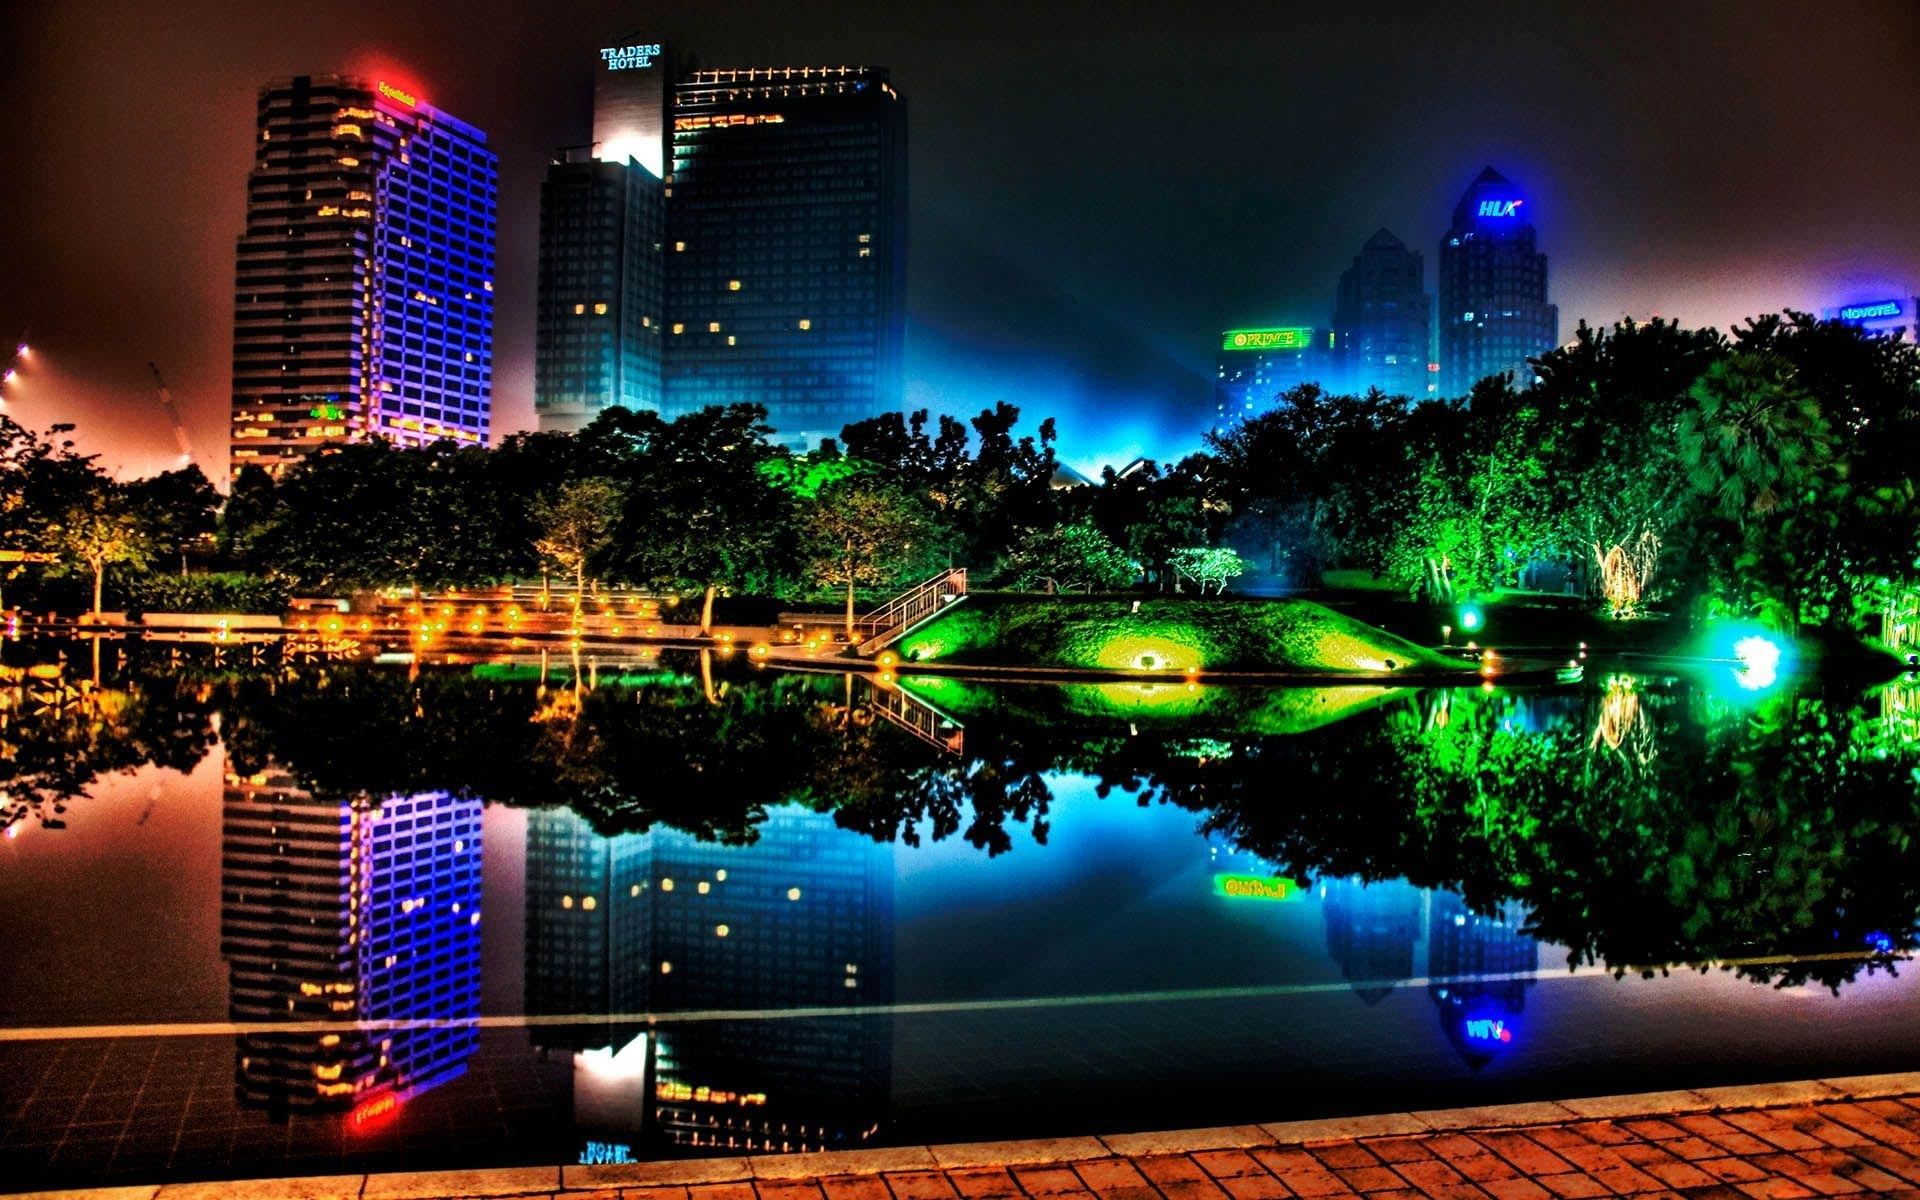 Beautiful night city, buildings, pond, lights, trees, park 1920x1200 wallpaper